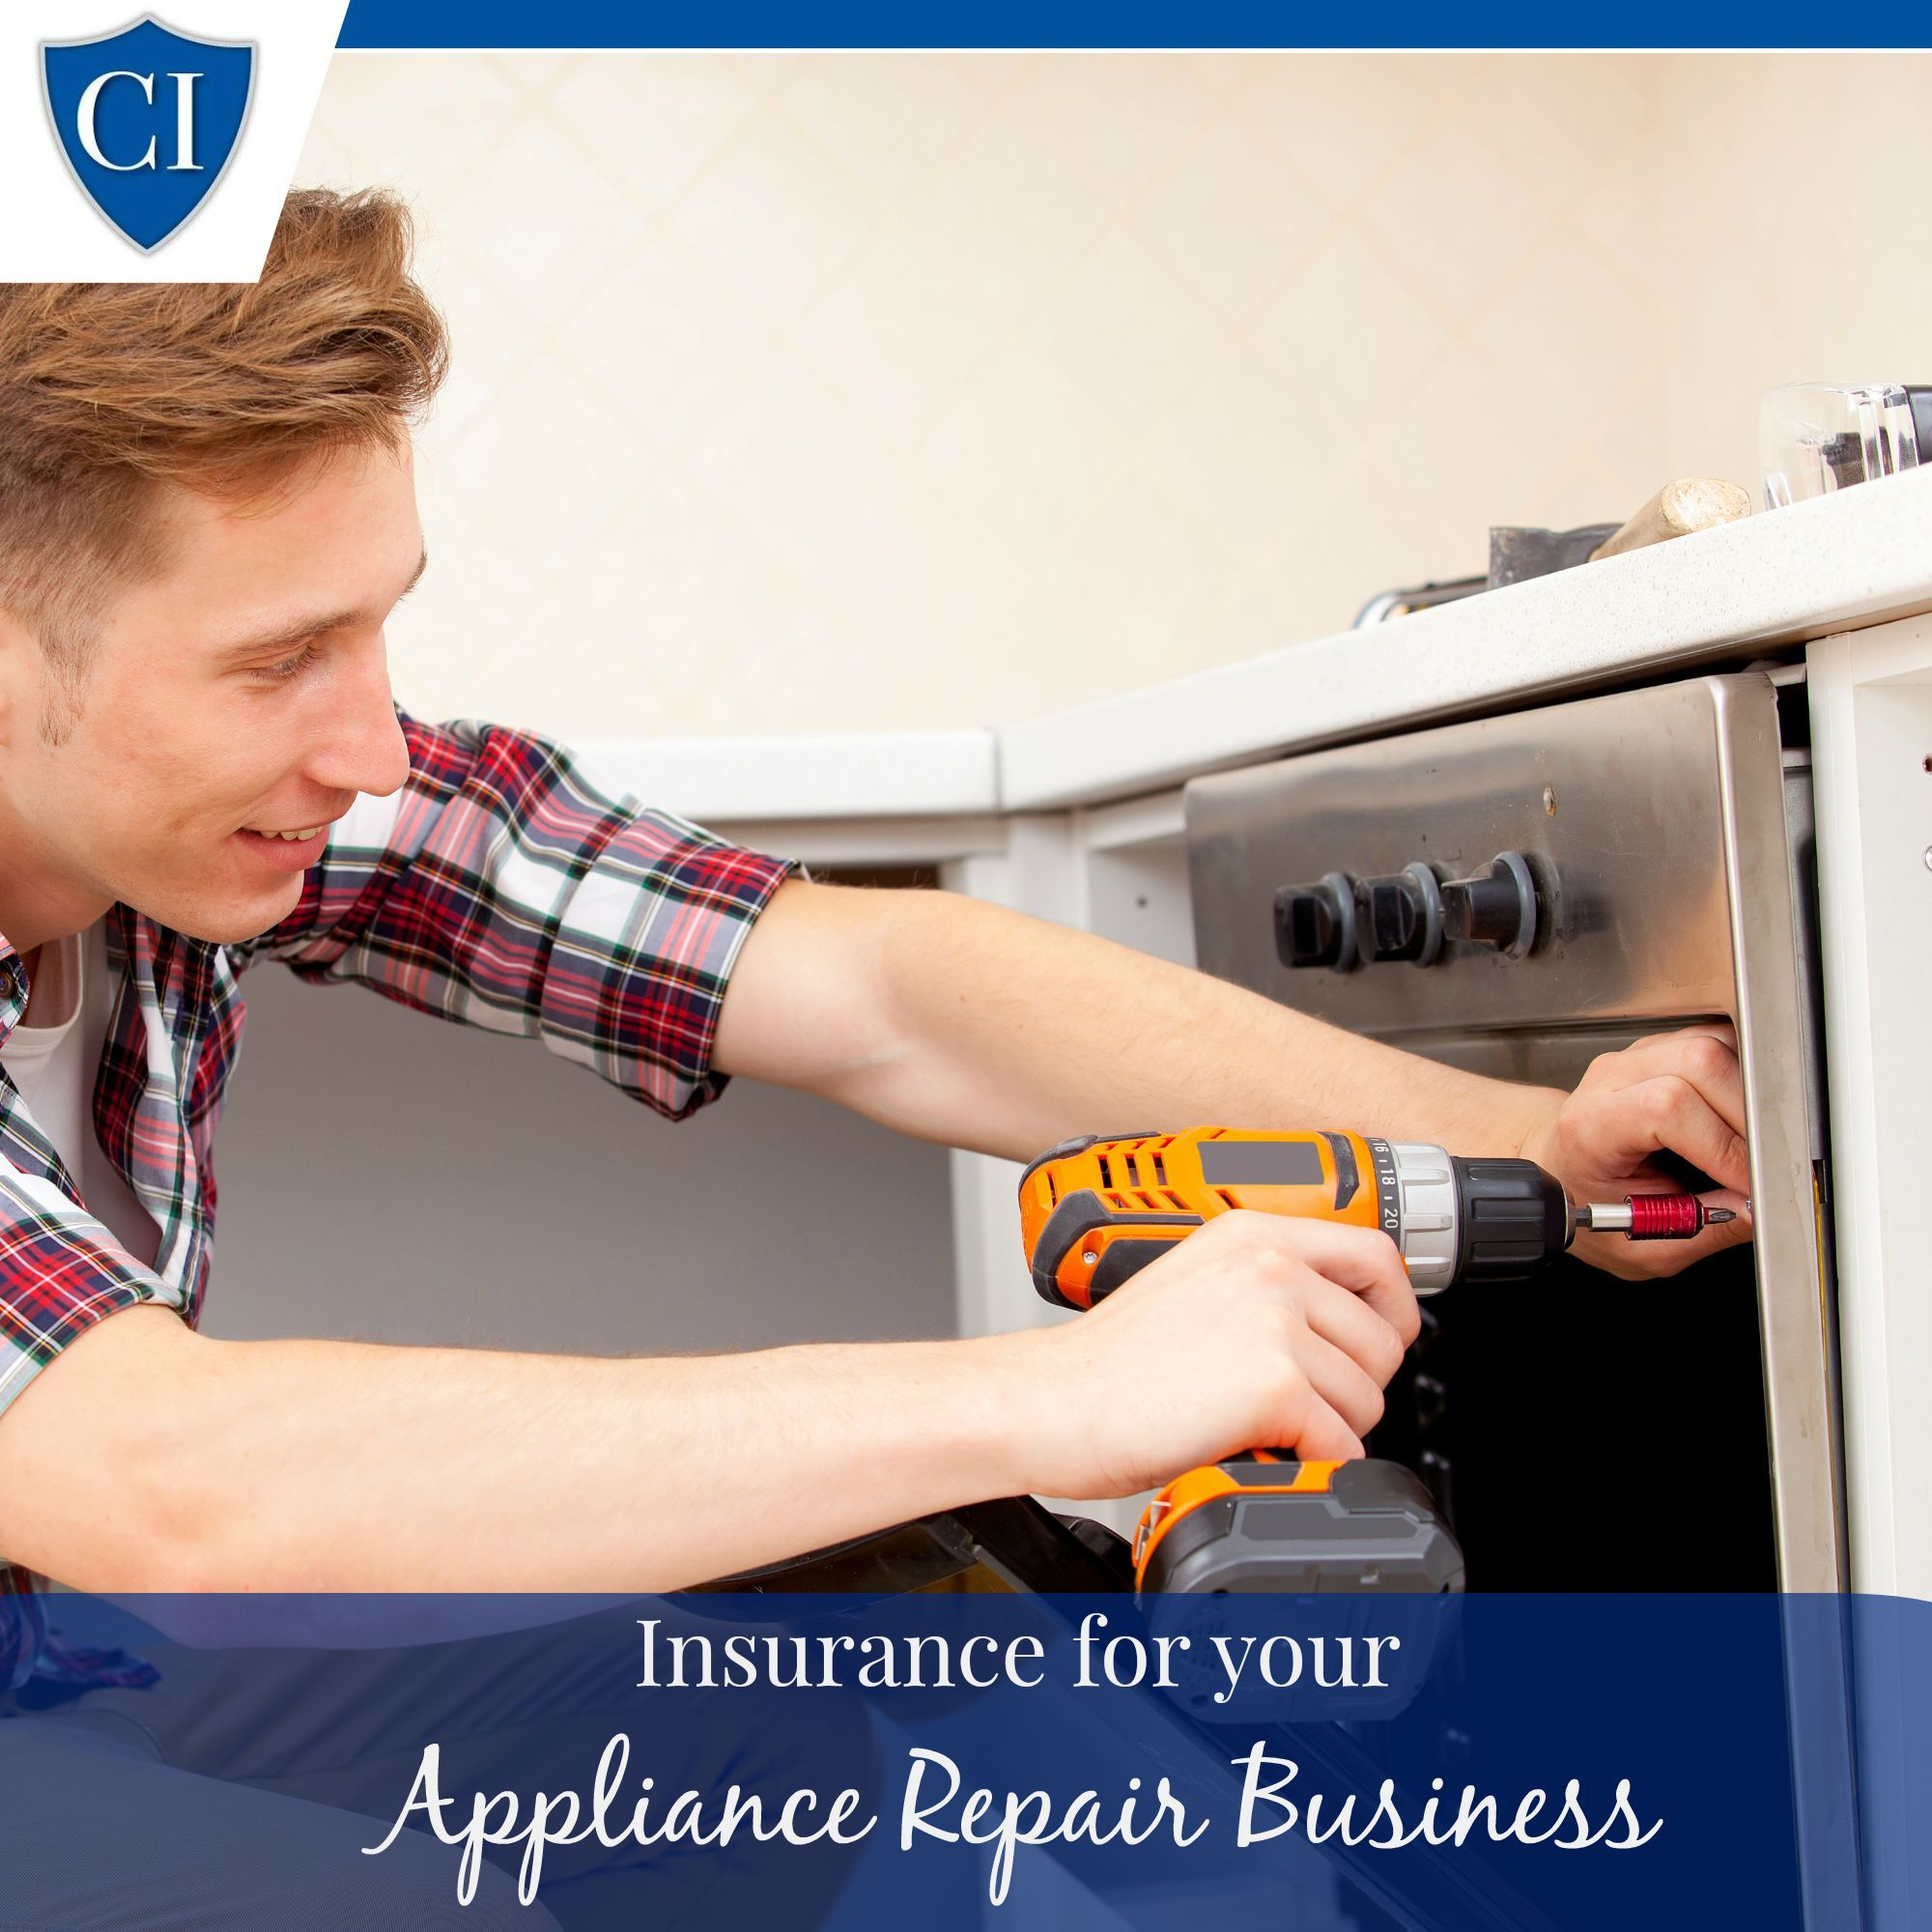 Insurance for your ApplianceRepair business